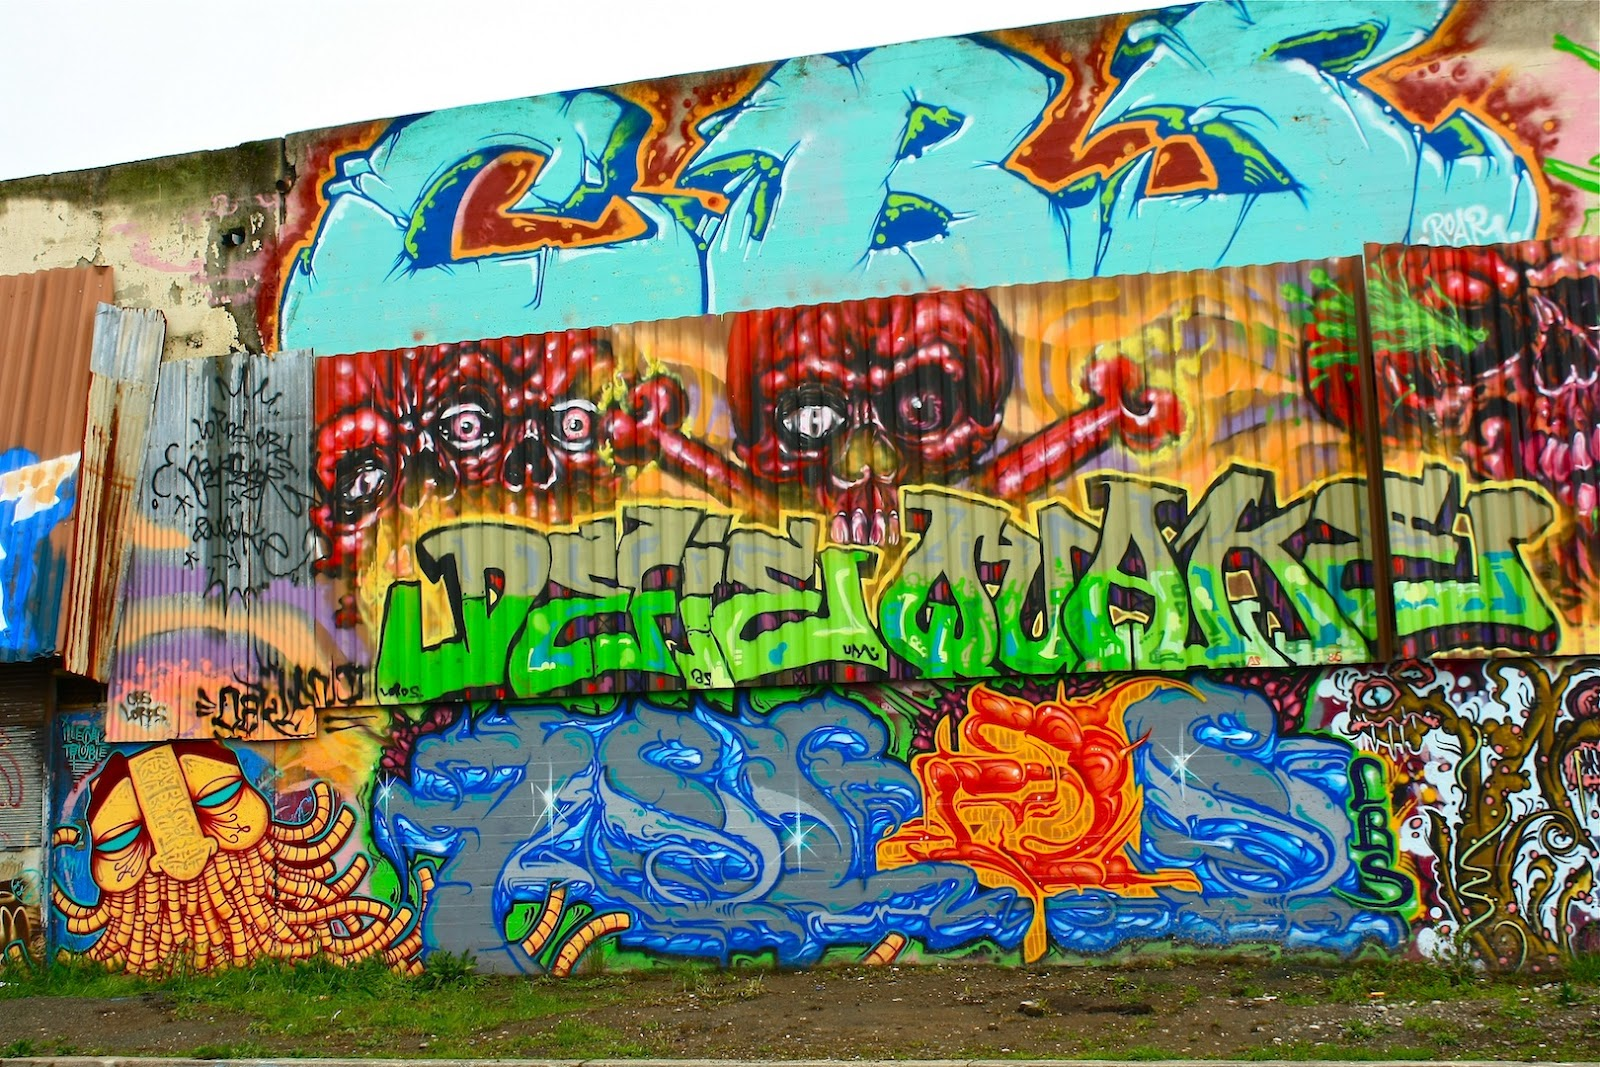 Oakland daily photo monday mural honest al 39 s wall for Alabama wall mural